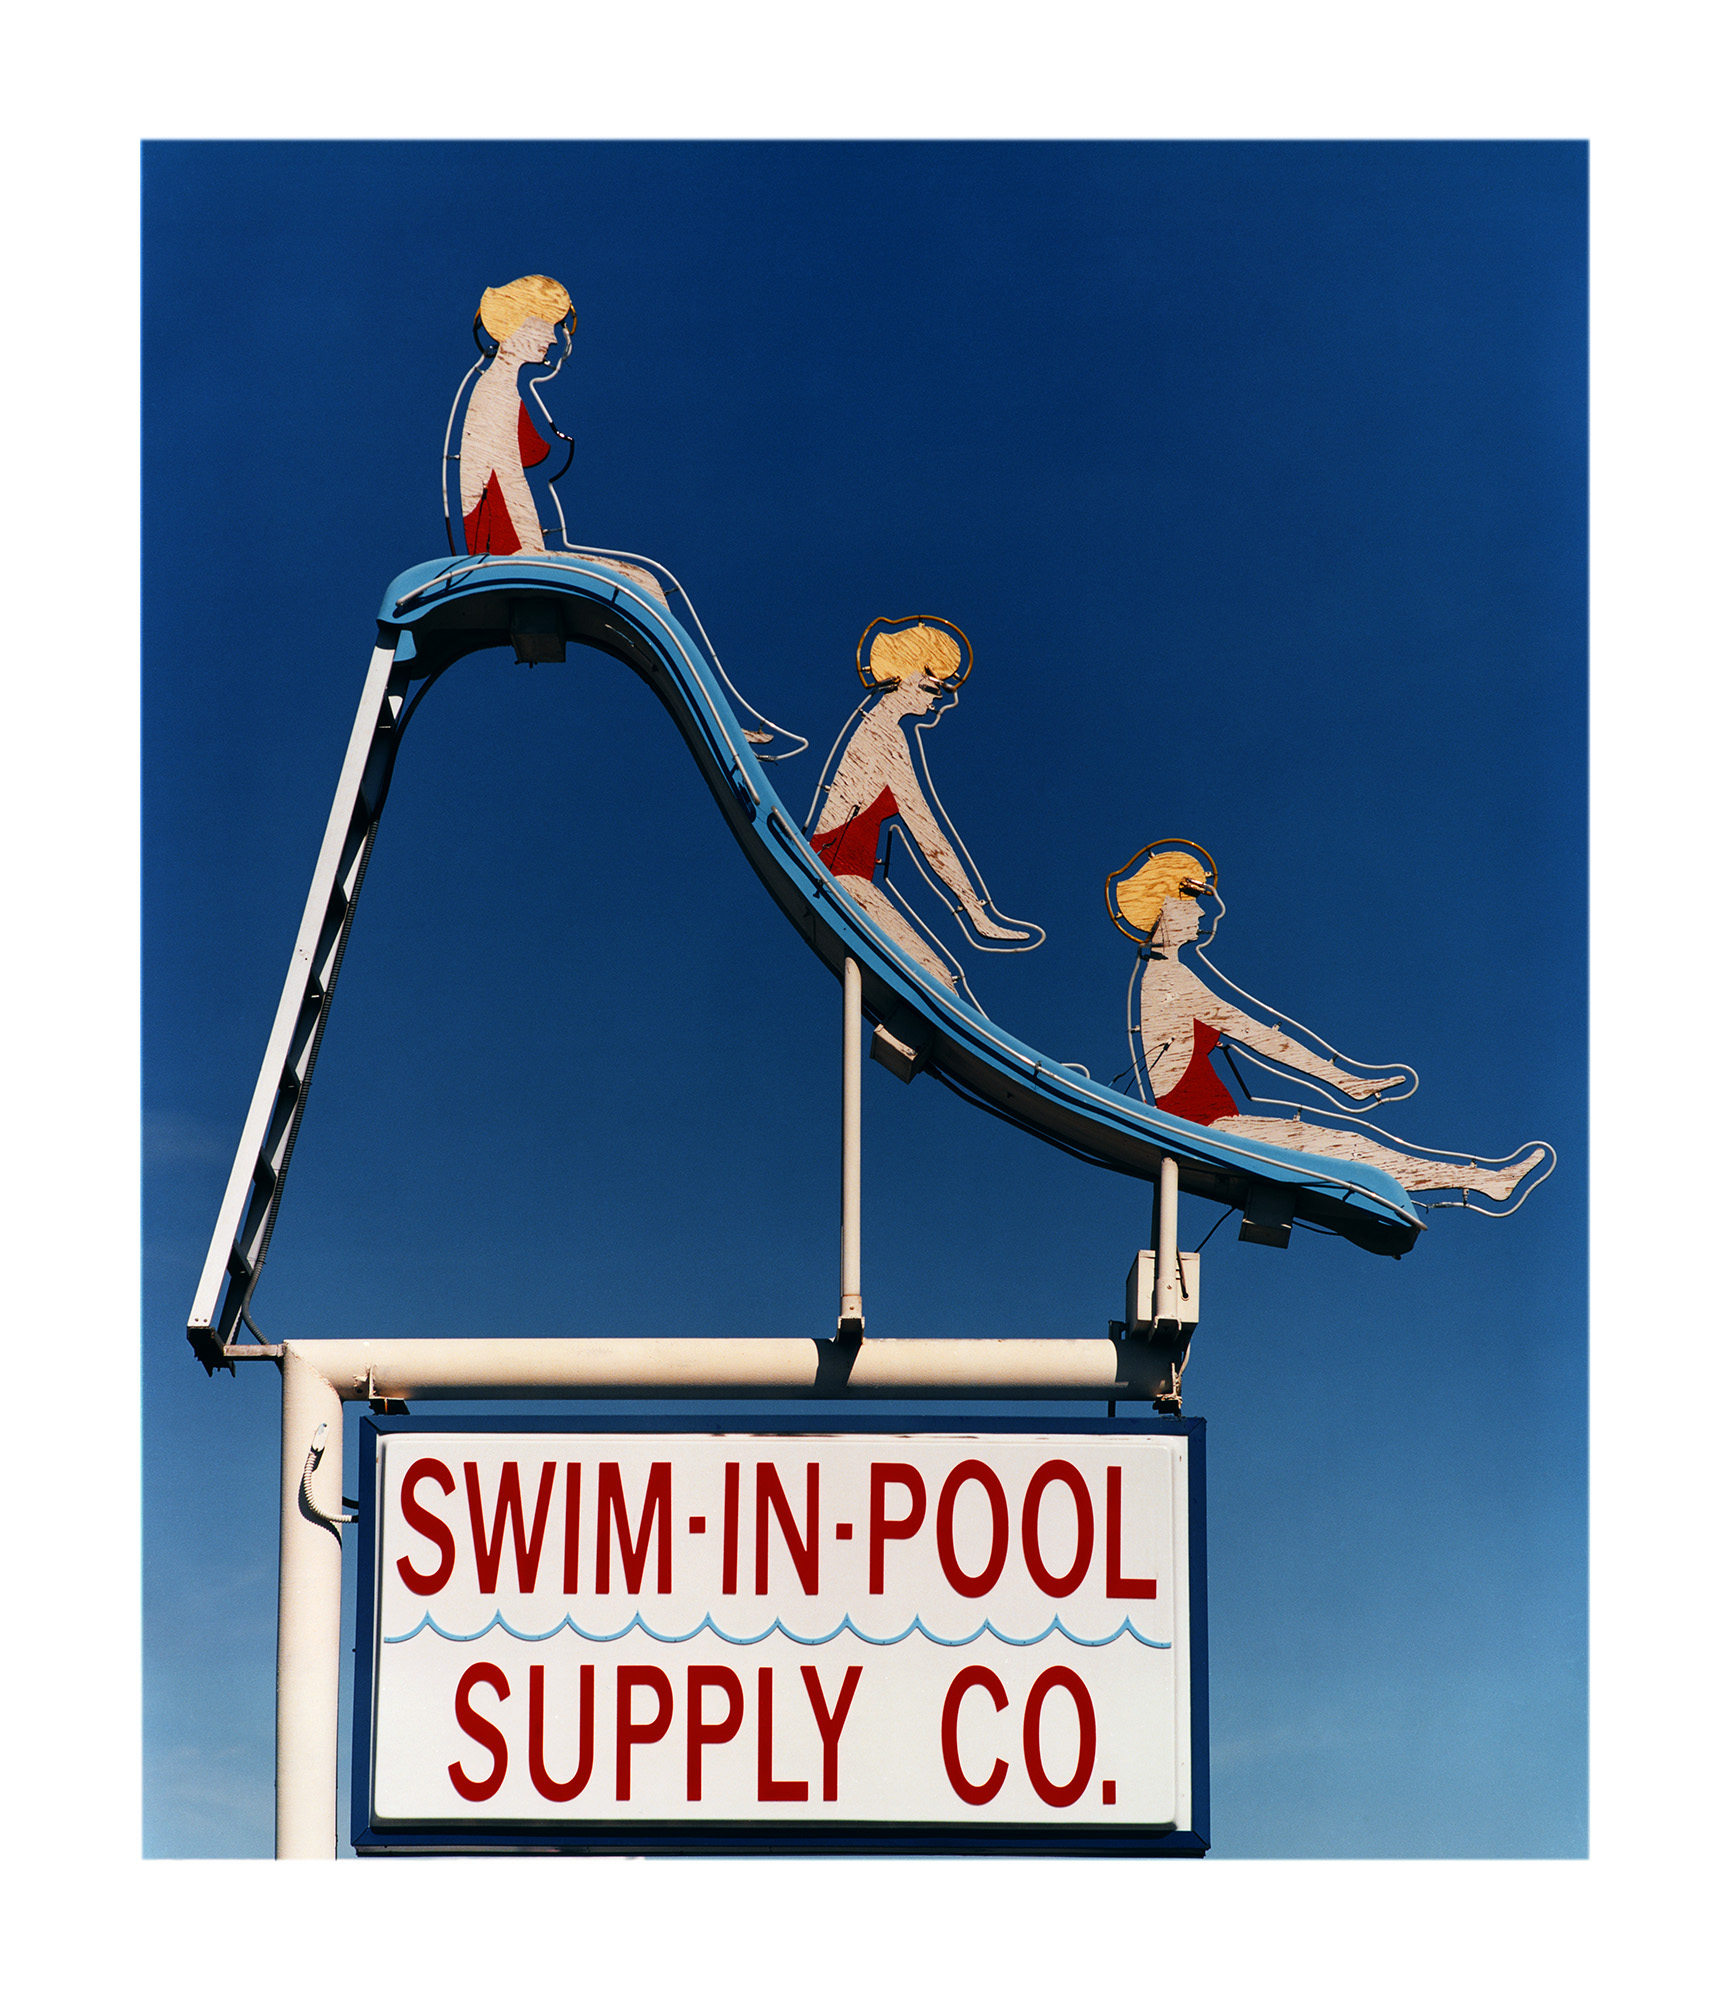 Richard Heeps, Swim-in-Pool, 2001, c-type, limited edition of 10, framed, £1295, Bleach Box